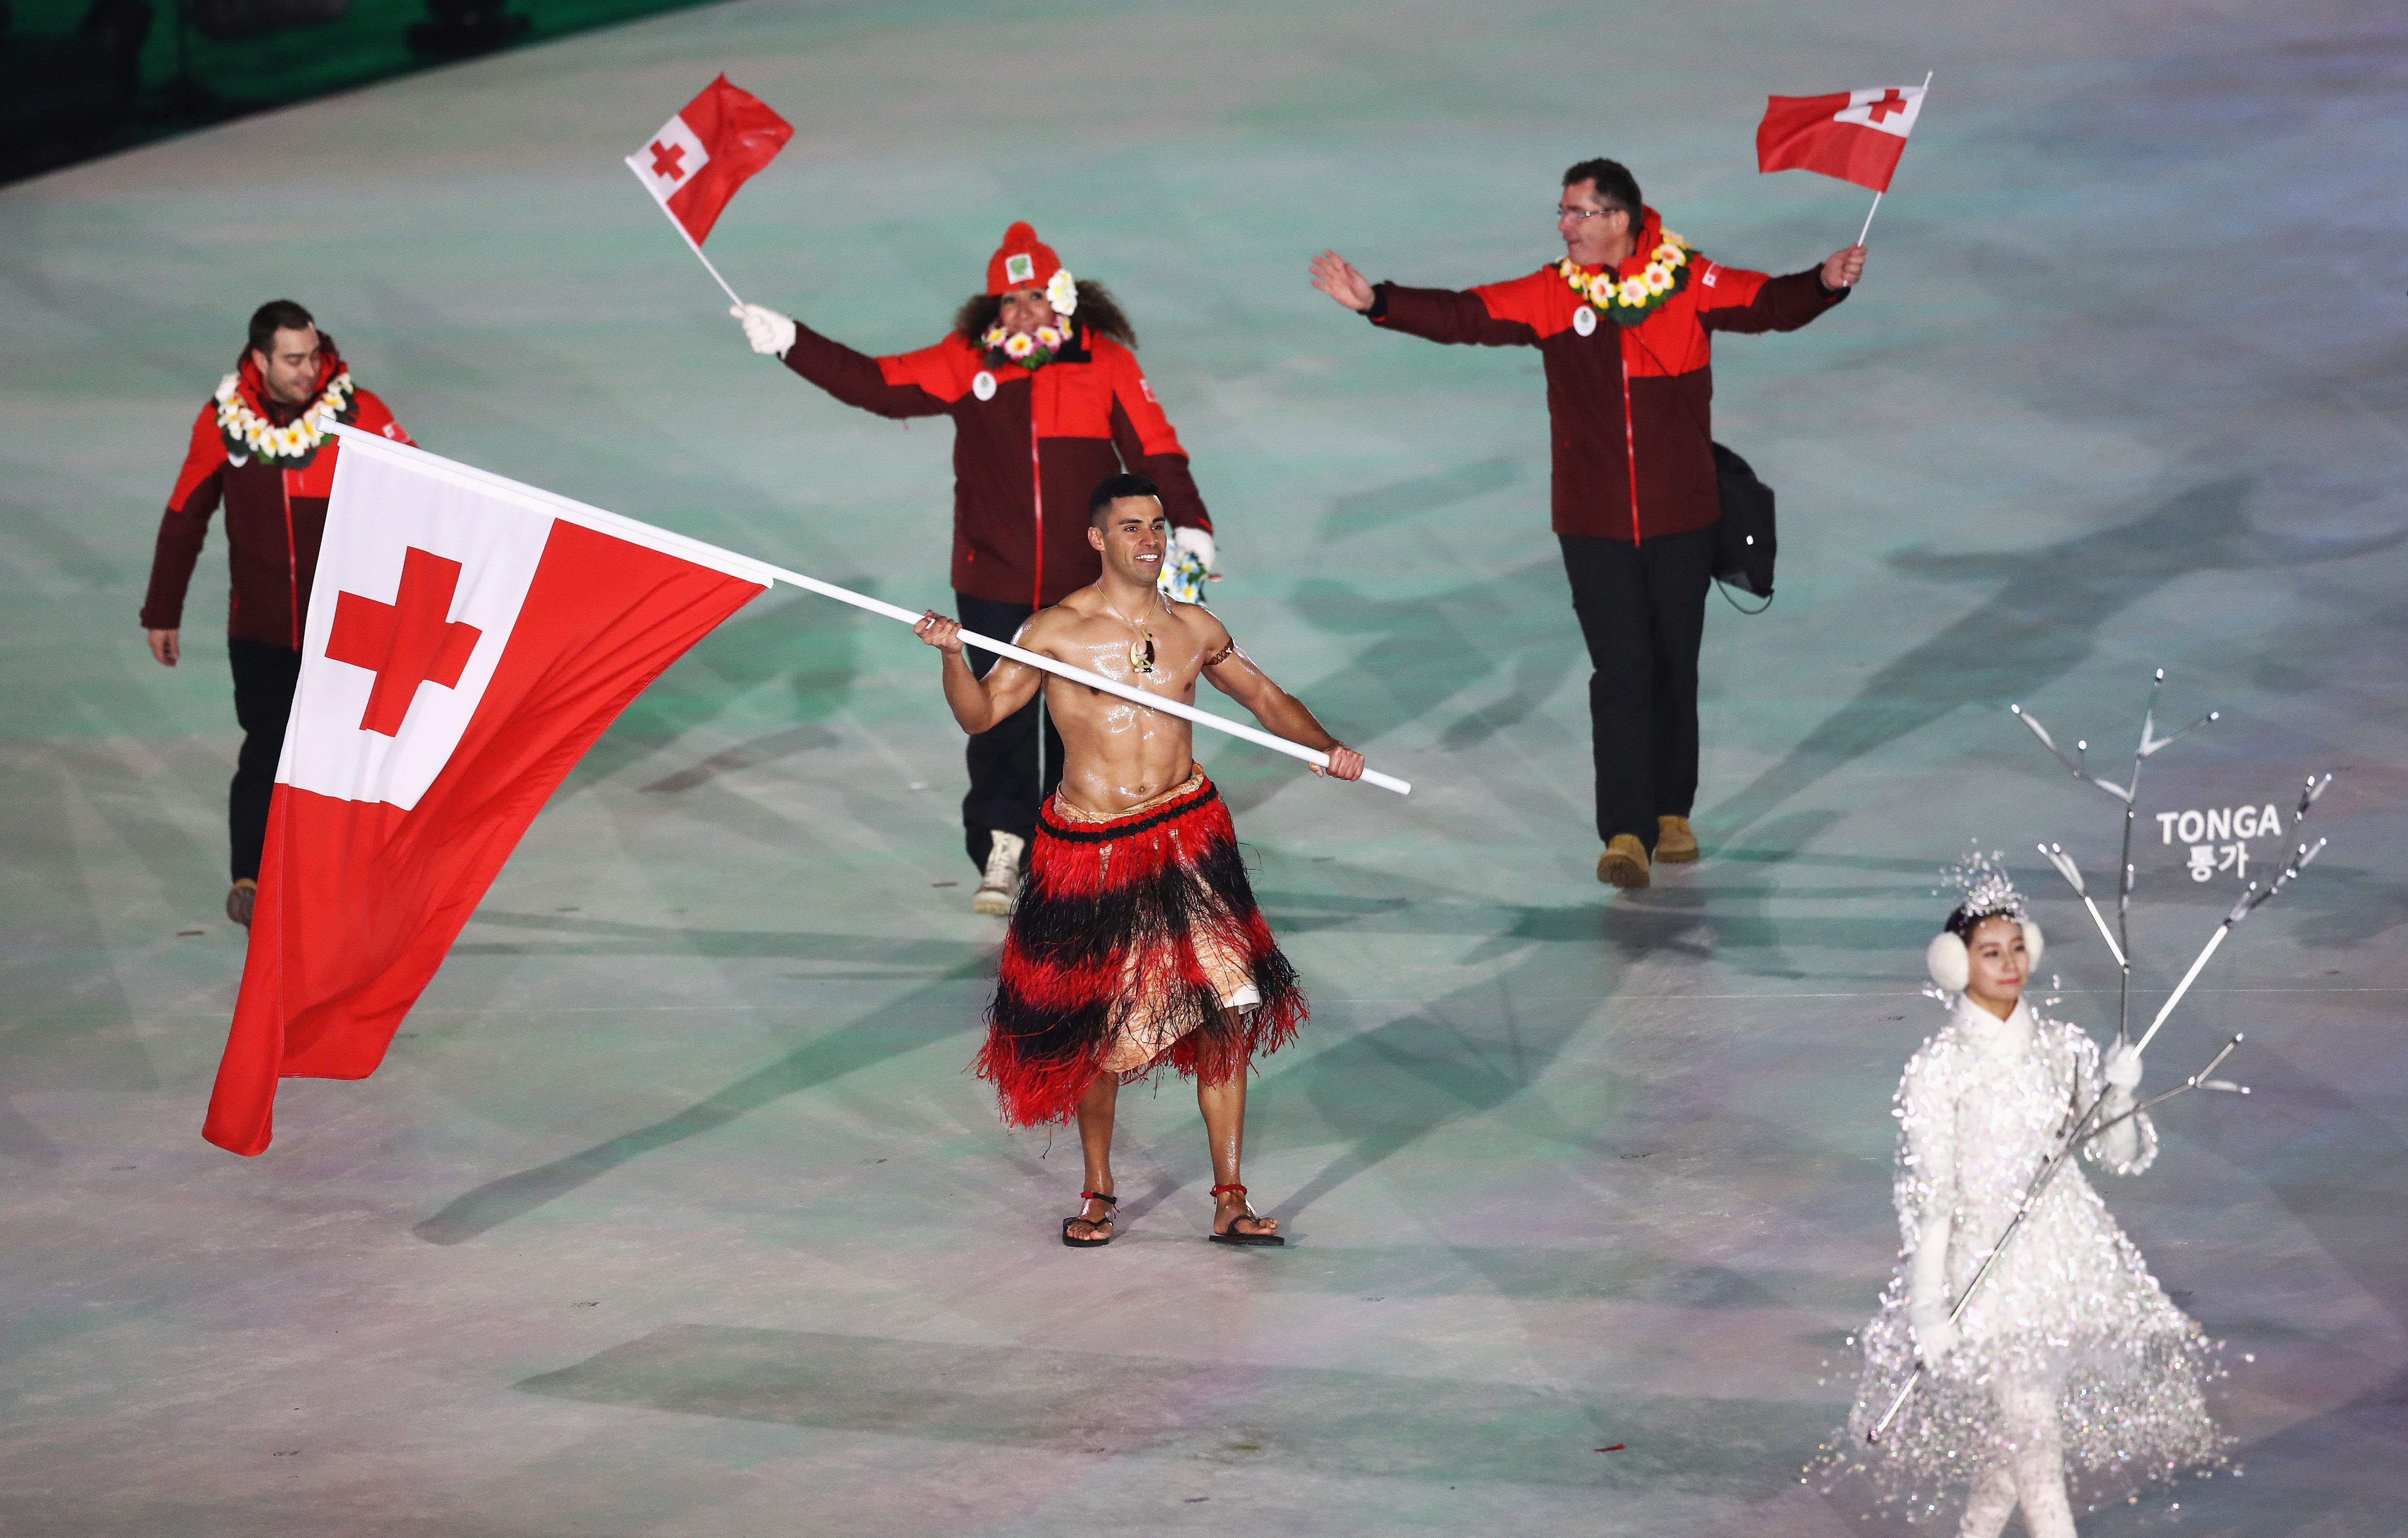 The Shirtless Tongan gives the people what they want at Opening Ceremony